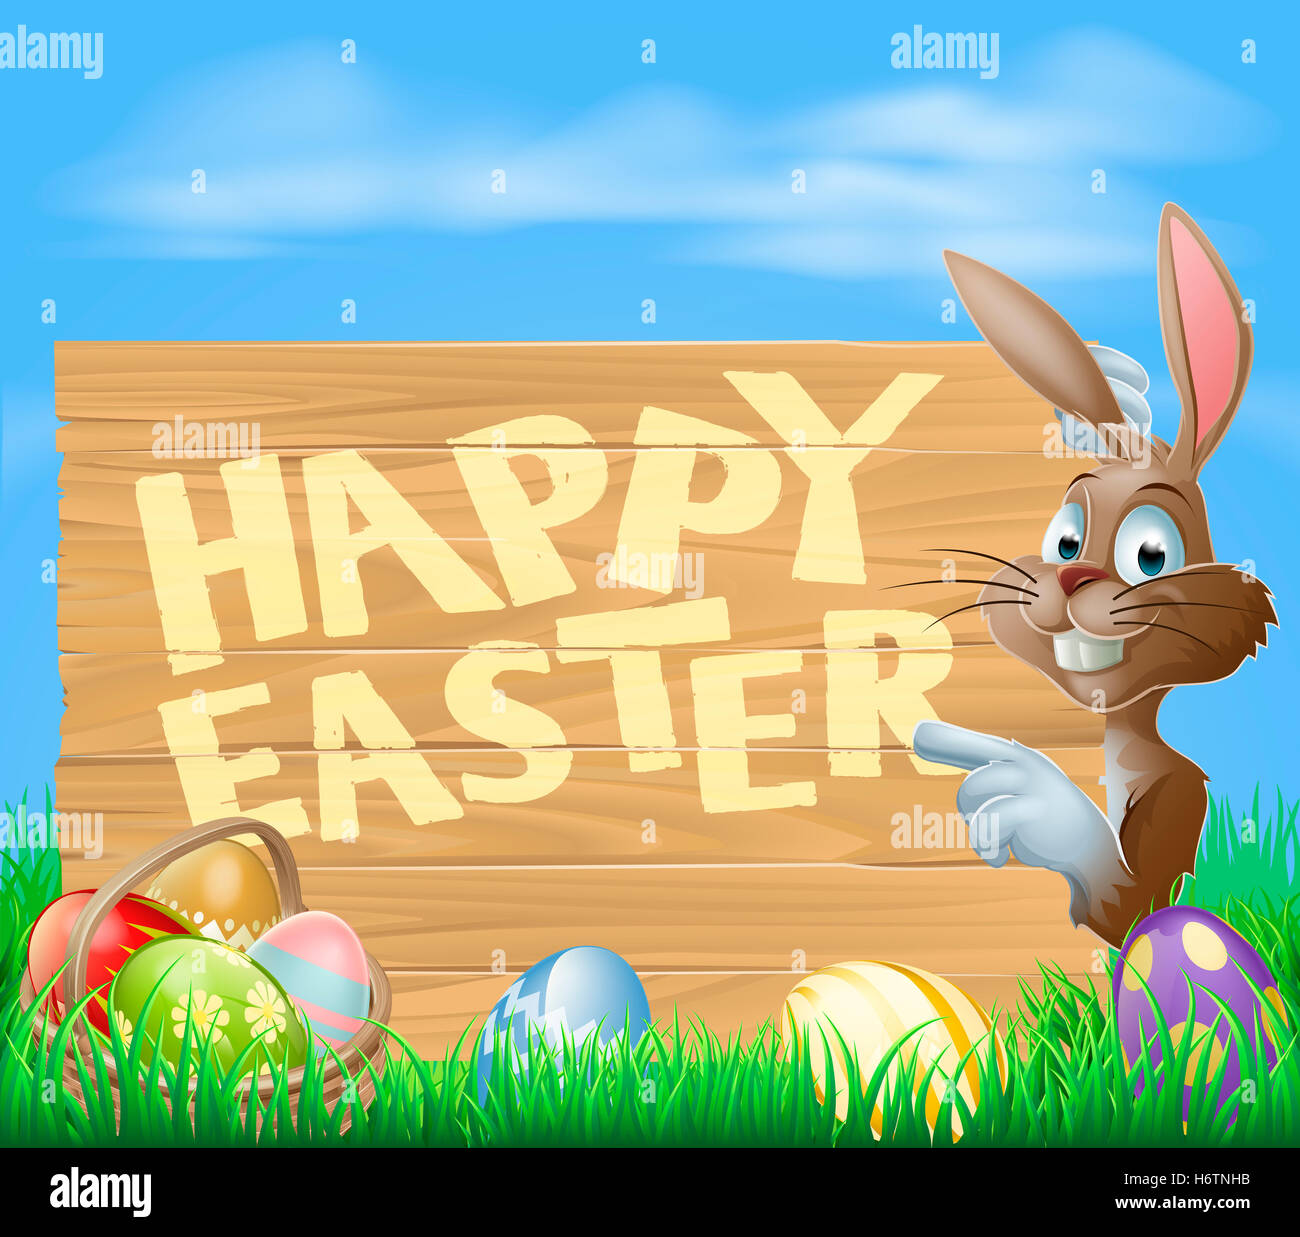 blue board finger sweet isolated wood field easter poster spring bouncing bounces hop skipping frisks jumping jump - Stock Image